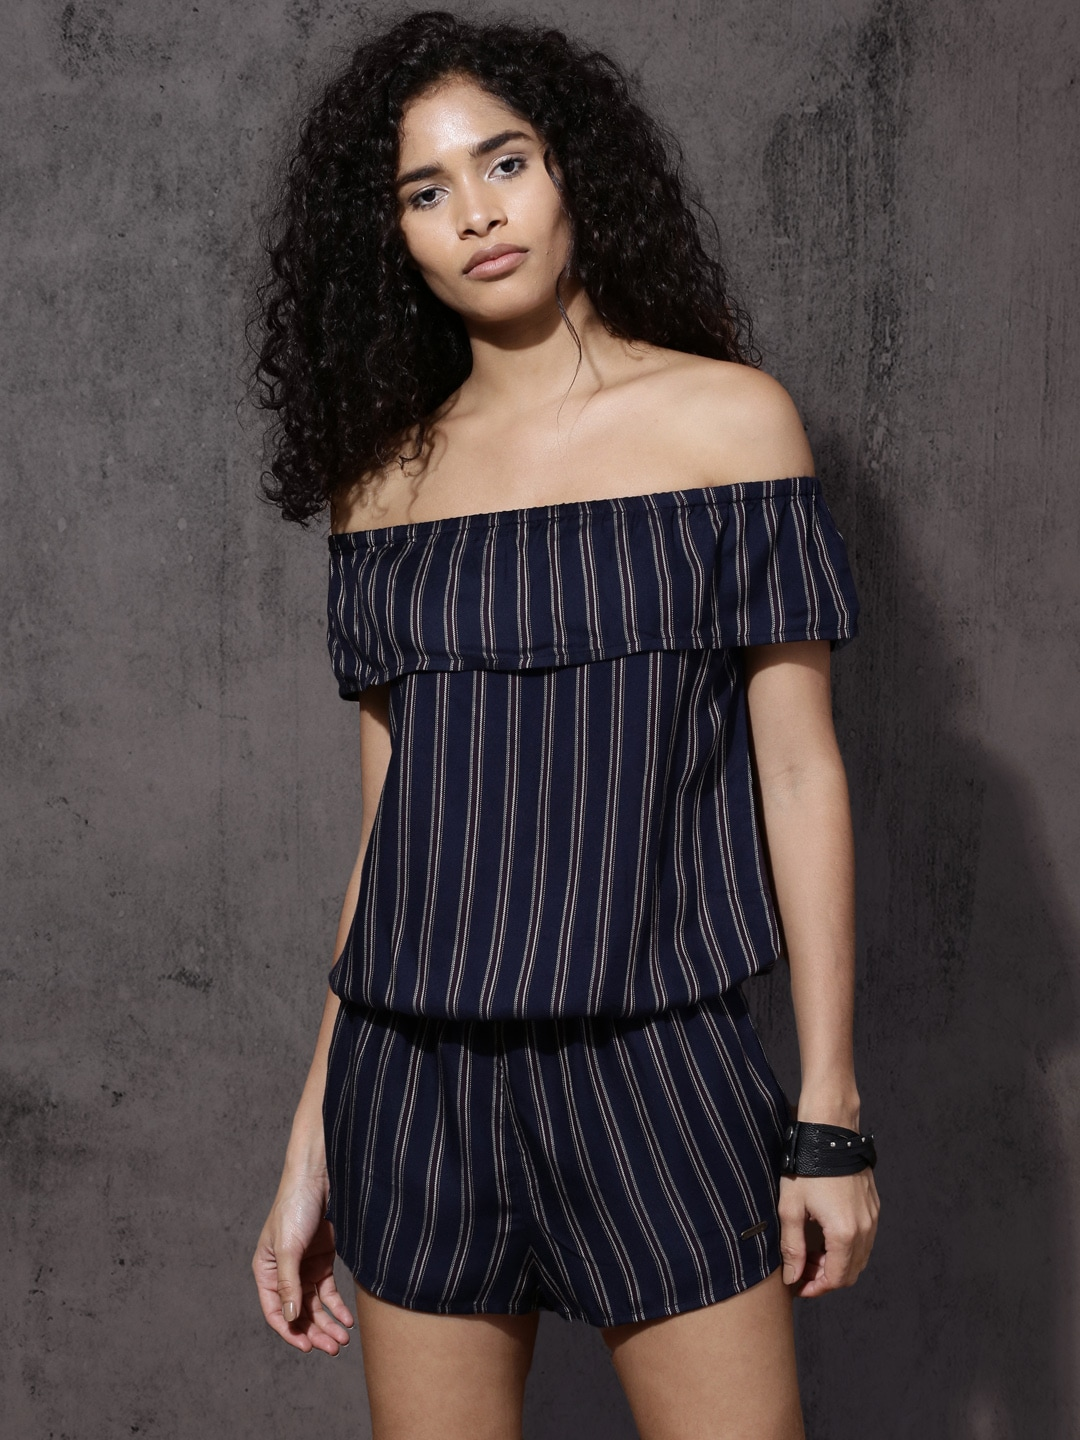 89f9a398ab Buy Envy Me Black   White Striped Layered Off Shoulder Playsuit ...